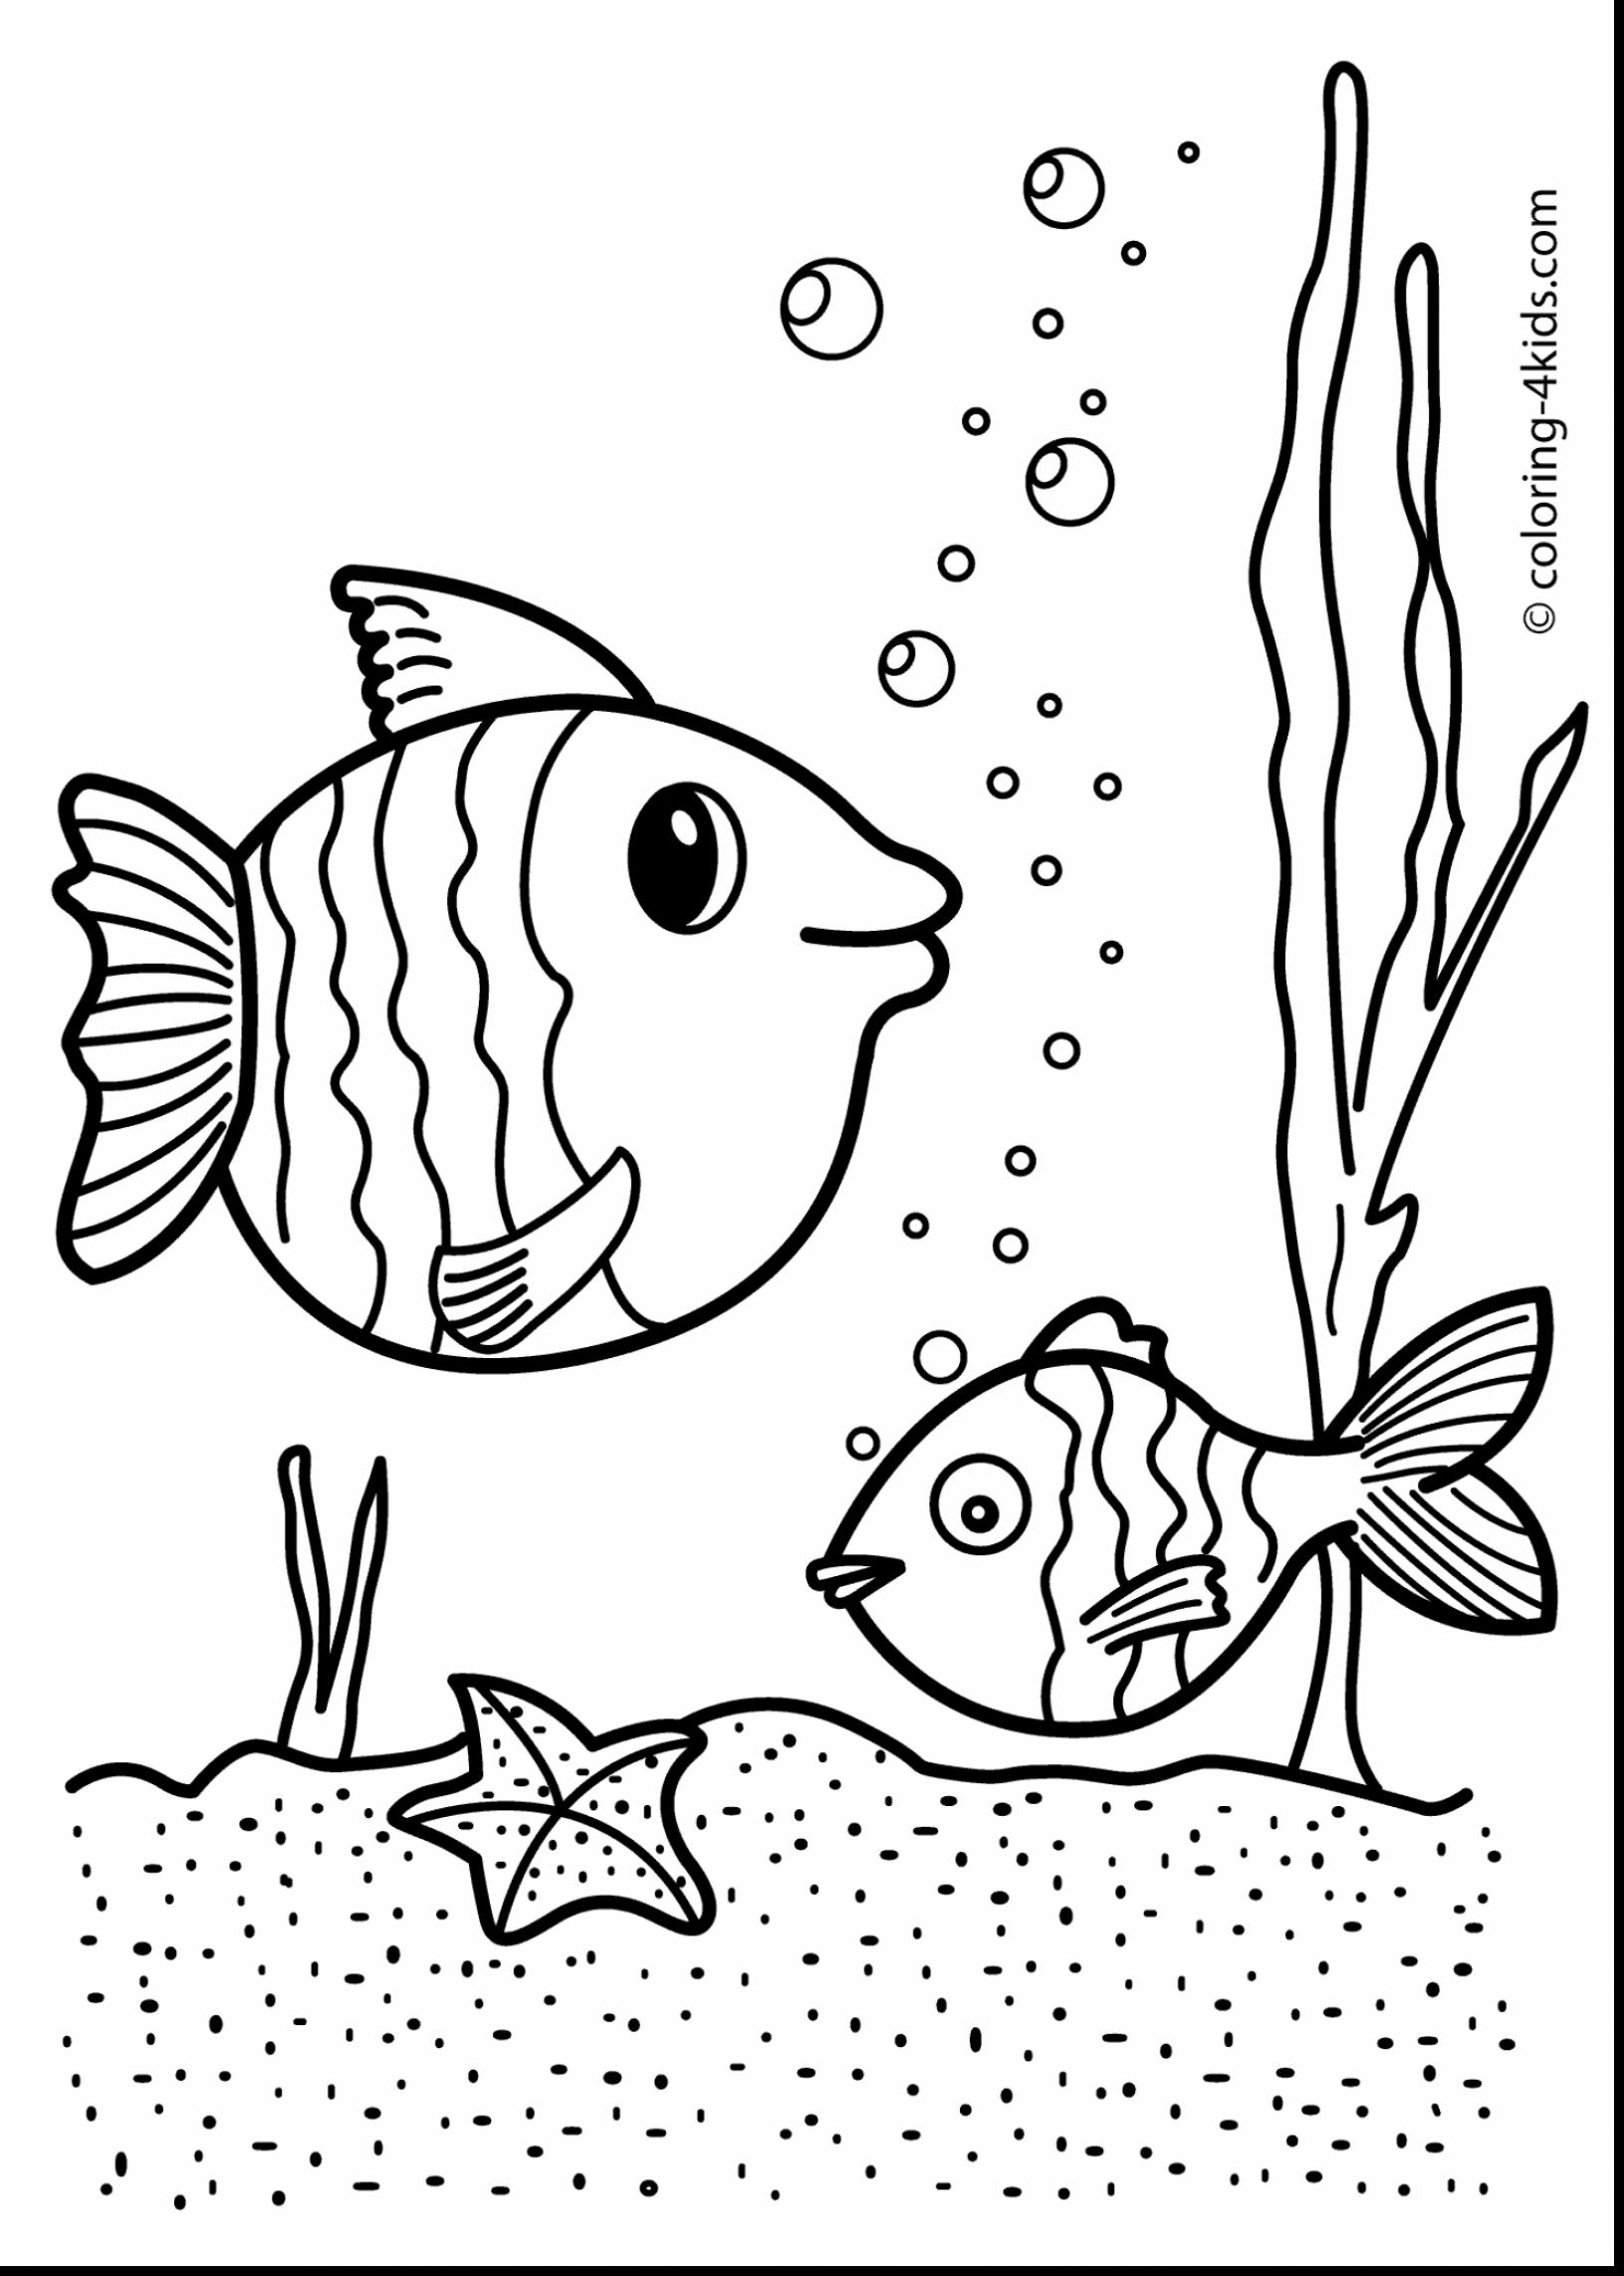 nature scene nature coloring pages coloring pages nature scenes at getcoloringscom free coloring nature scene pages nature